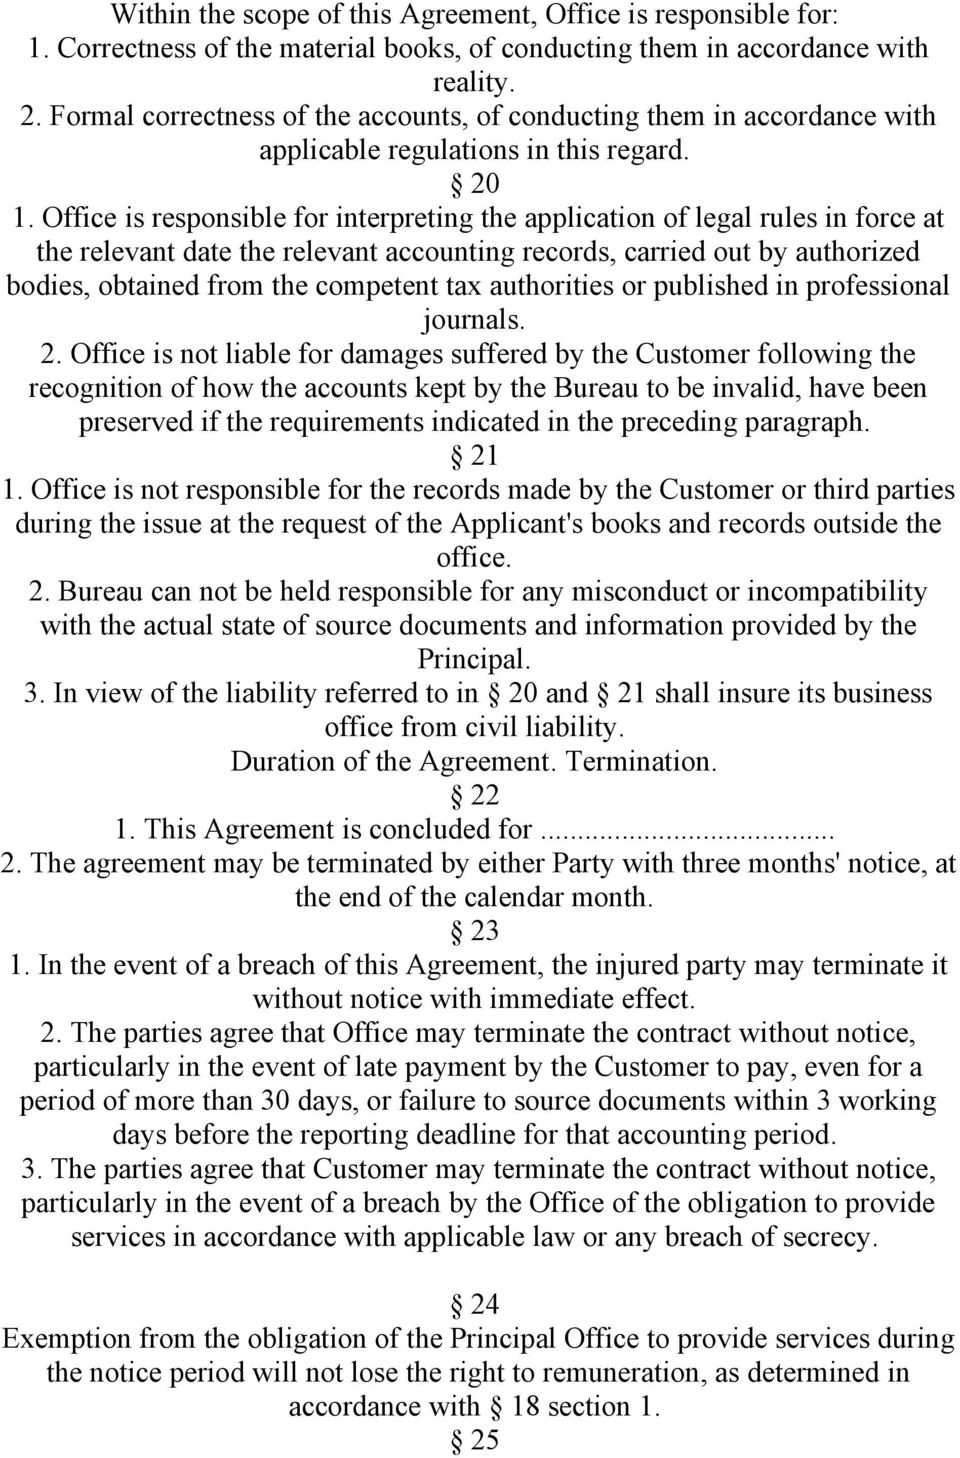 Office is responsible for interpreting the application of legal rules in force at the relevant date the relevant accounting records, carried out by authorized bodies, obtained from the competent tax